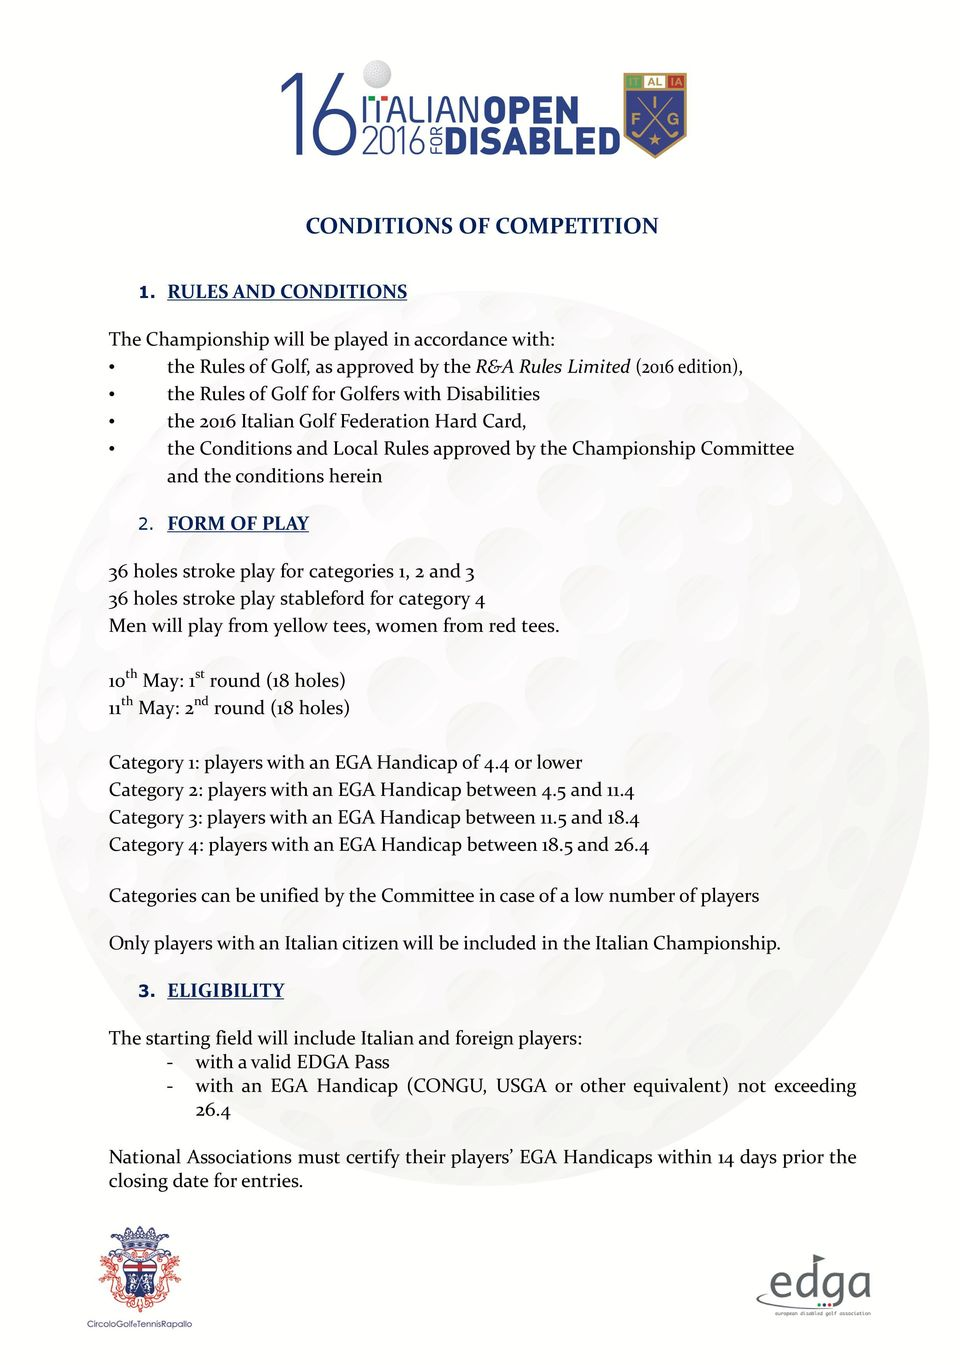 2016 Italian Golf Federation Hard Card, the Conditions and Local Rules approved by the Championship Committee and the conditions herein 2.